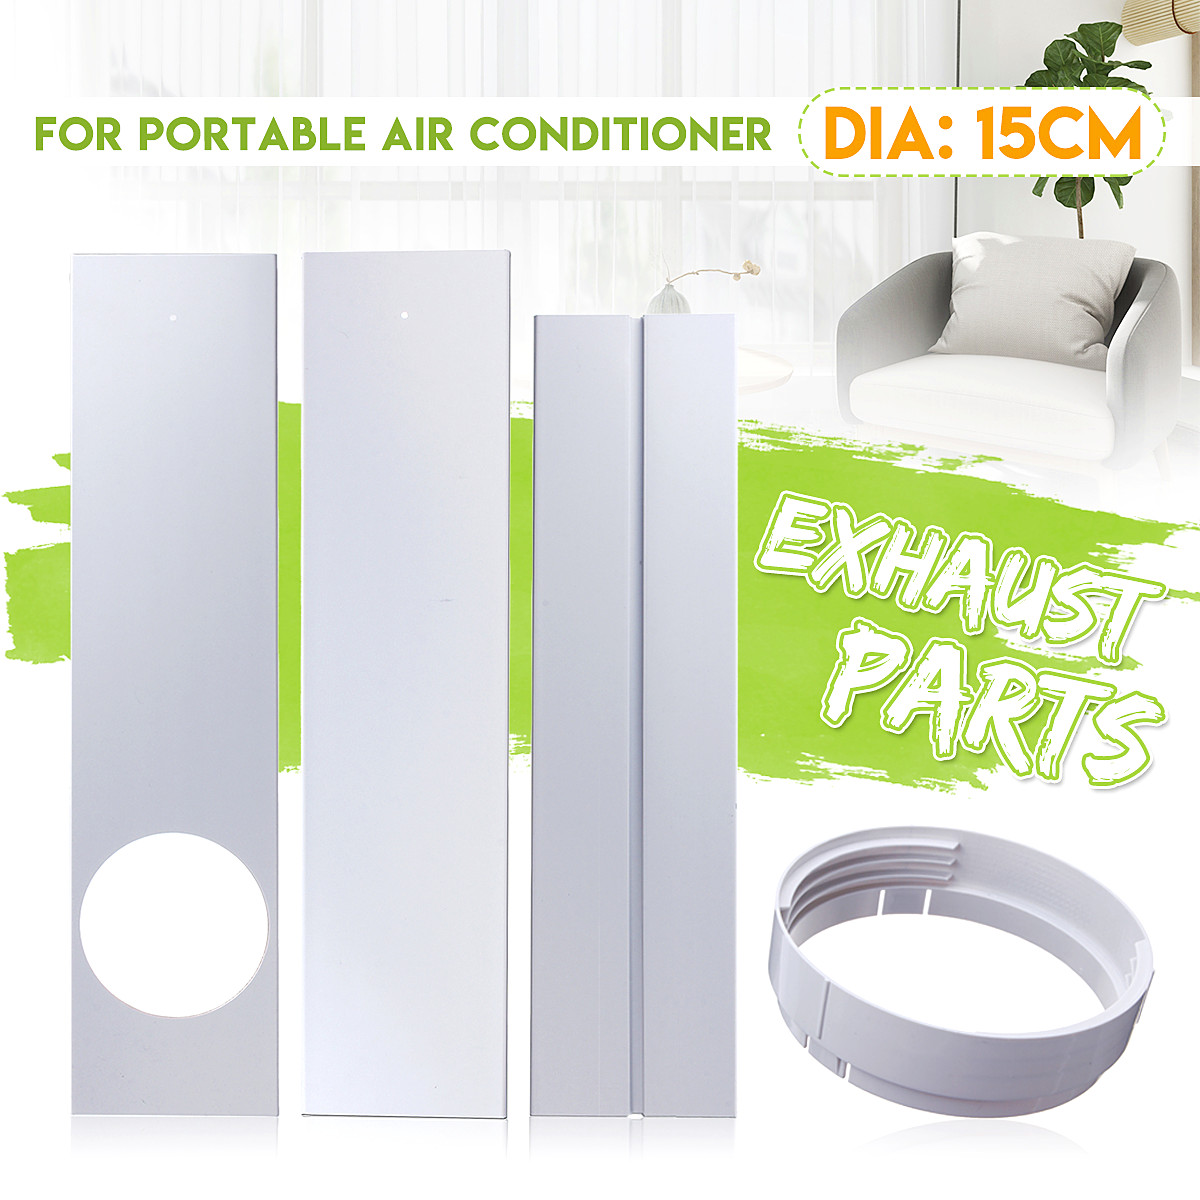 15cm Window Air Exhaust Hose Adaptor Connectors Plate Lock Sealing For Portable Mobile Air Conditioners Air-Conditioning Units